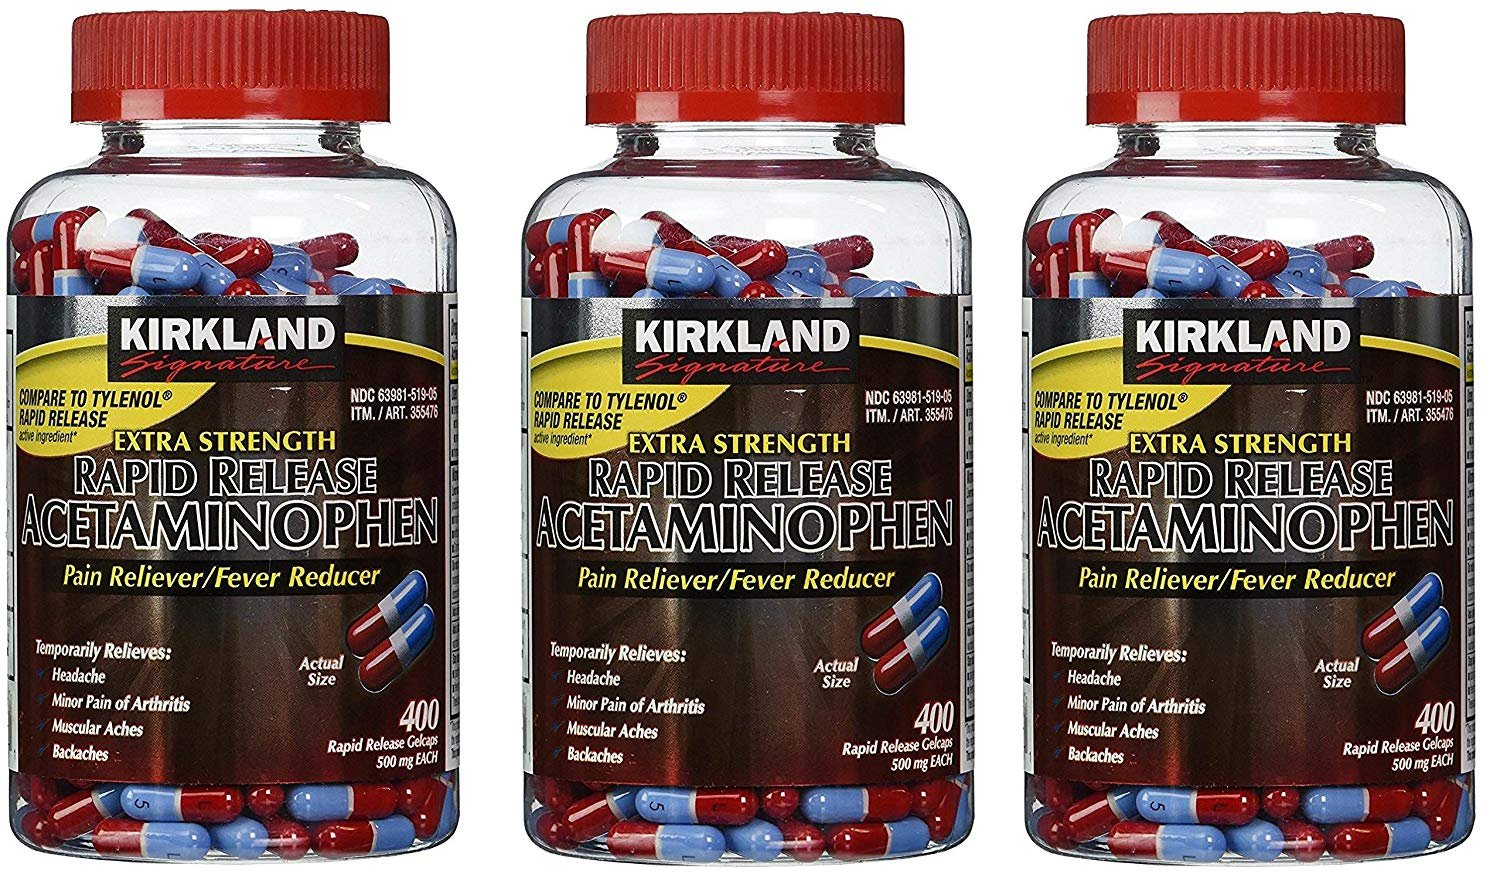 Kirkland Signature irlbGe Acetaminophen Extra Strength 500mg Rapid Release Gelcap, 400 Count (3 Pack) by Kirkland Signature